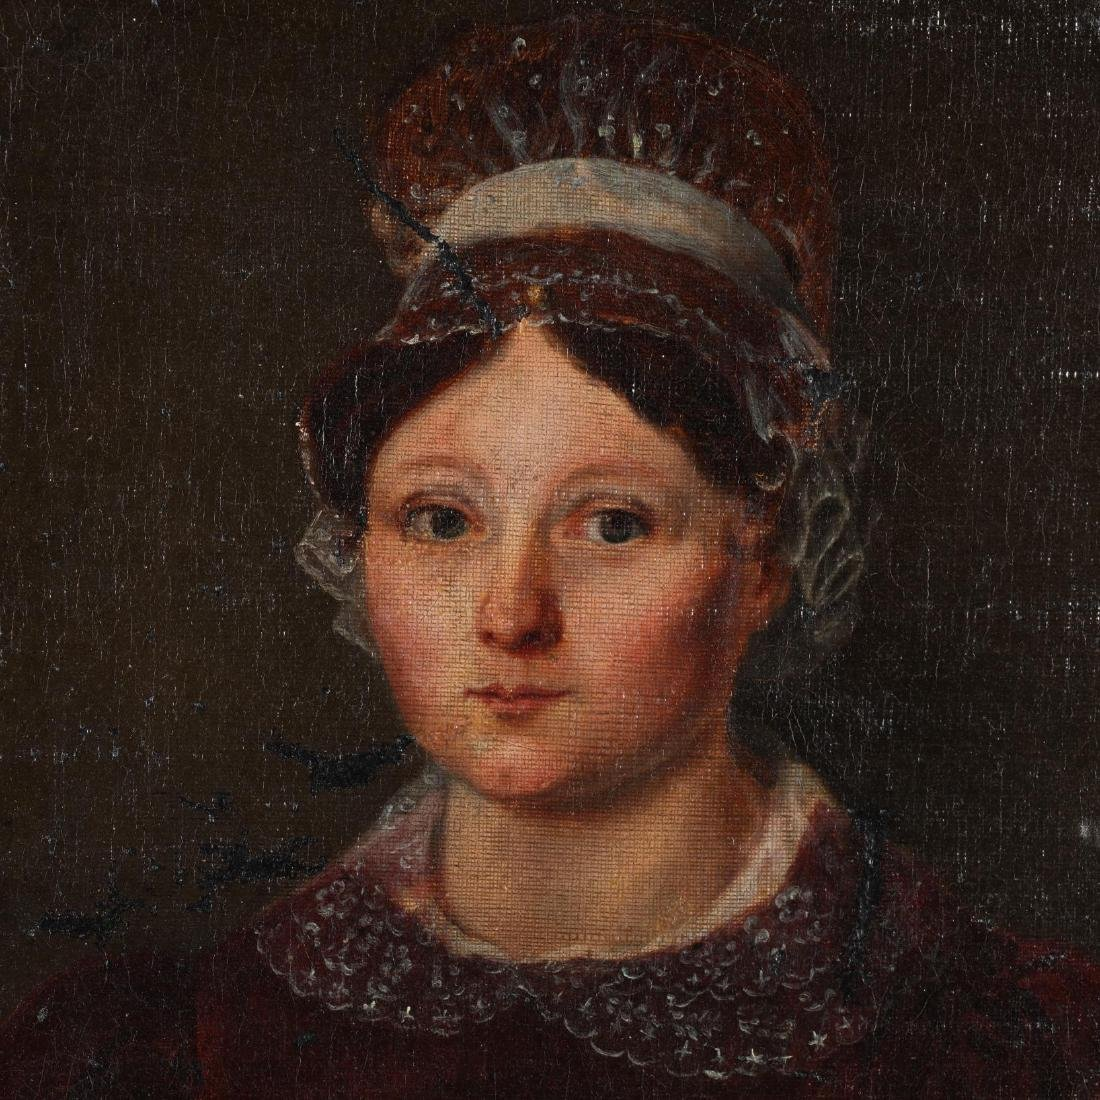 Antique Portrait of a Woman Wearing Red Dress and - 2